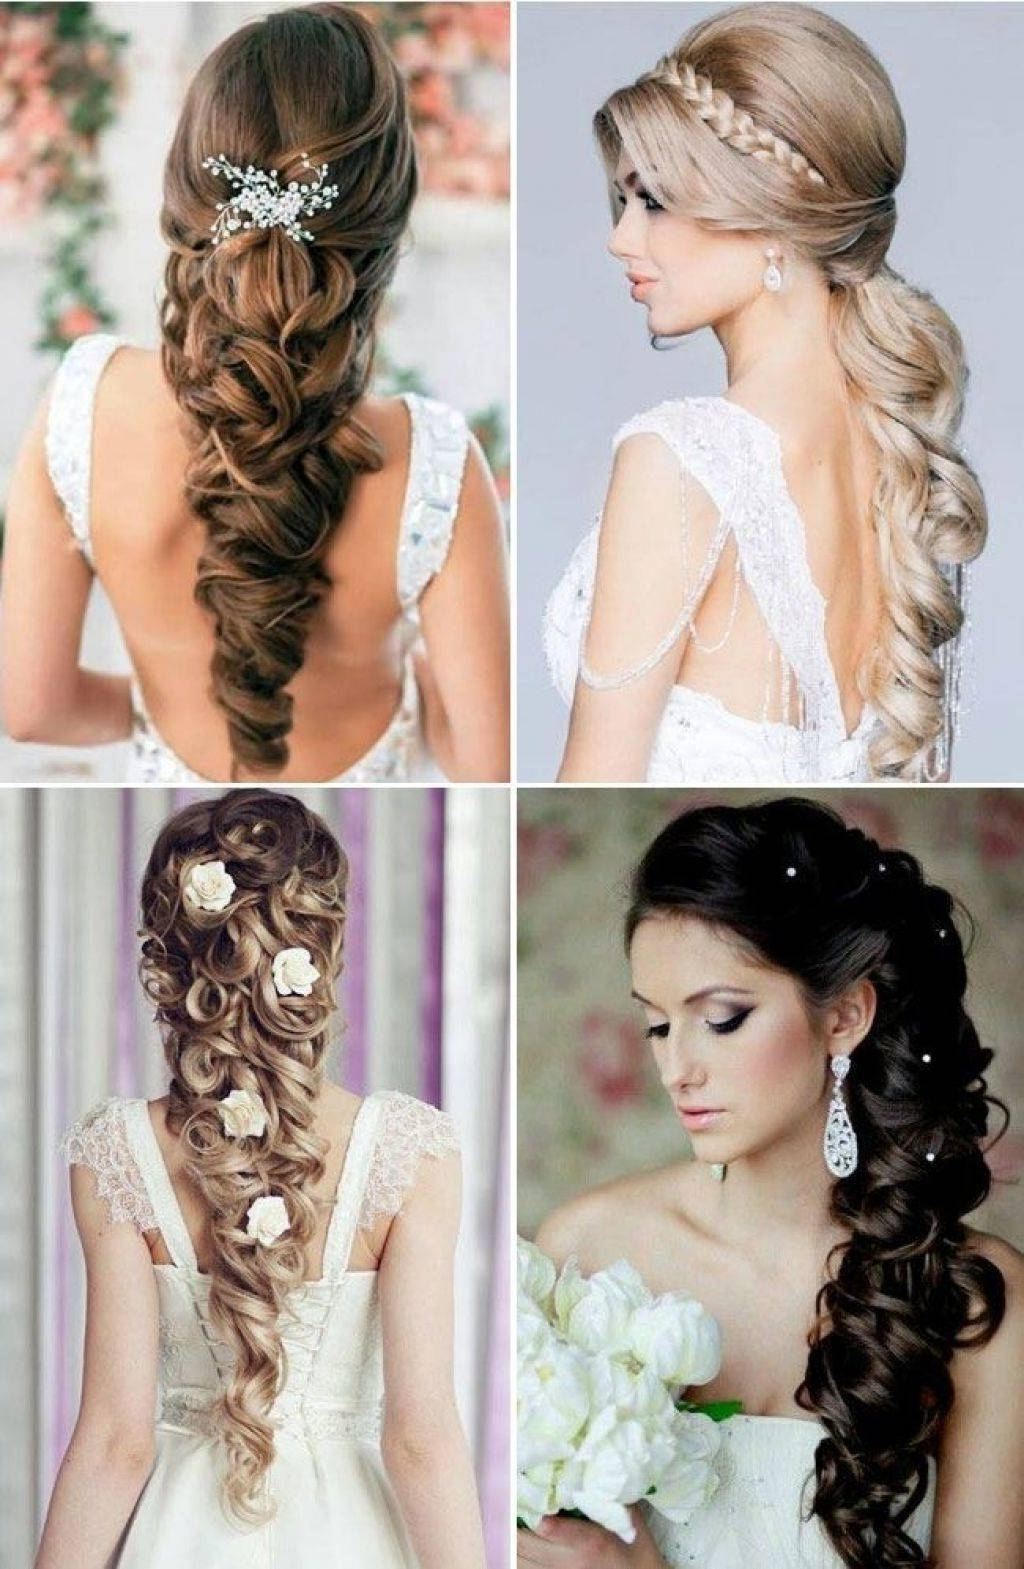 Well Known Wedding Hairstyles For Very Long Hair Inside The Long Hairstyle For Bride – Hairstyle (View 7 of 15)